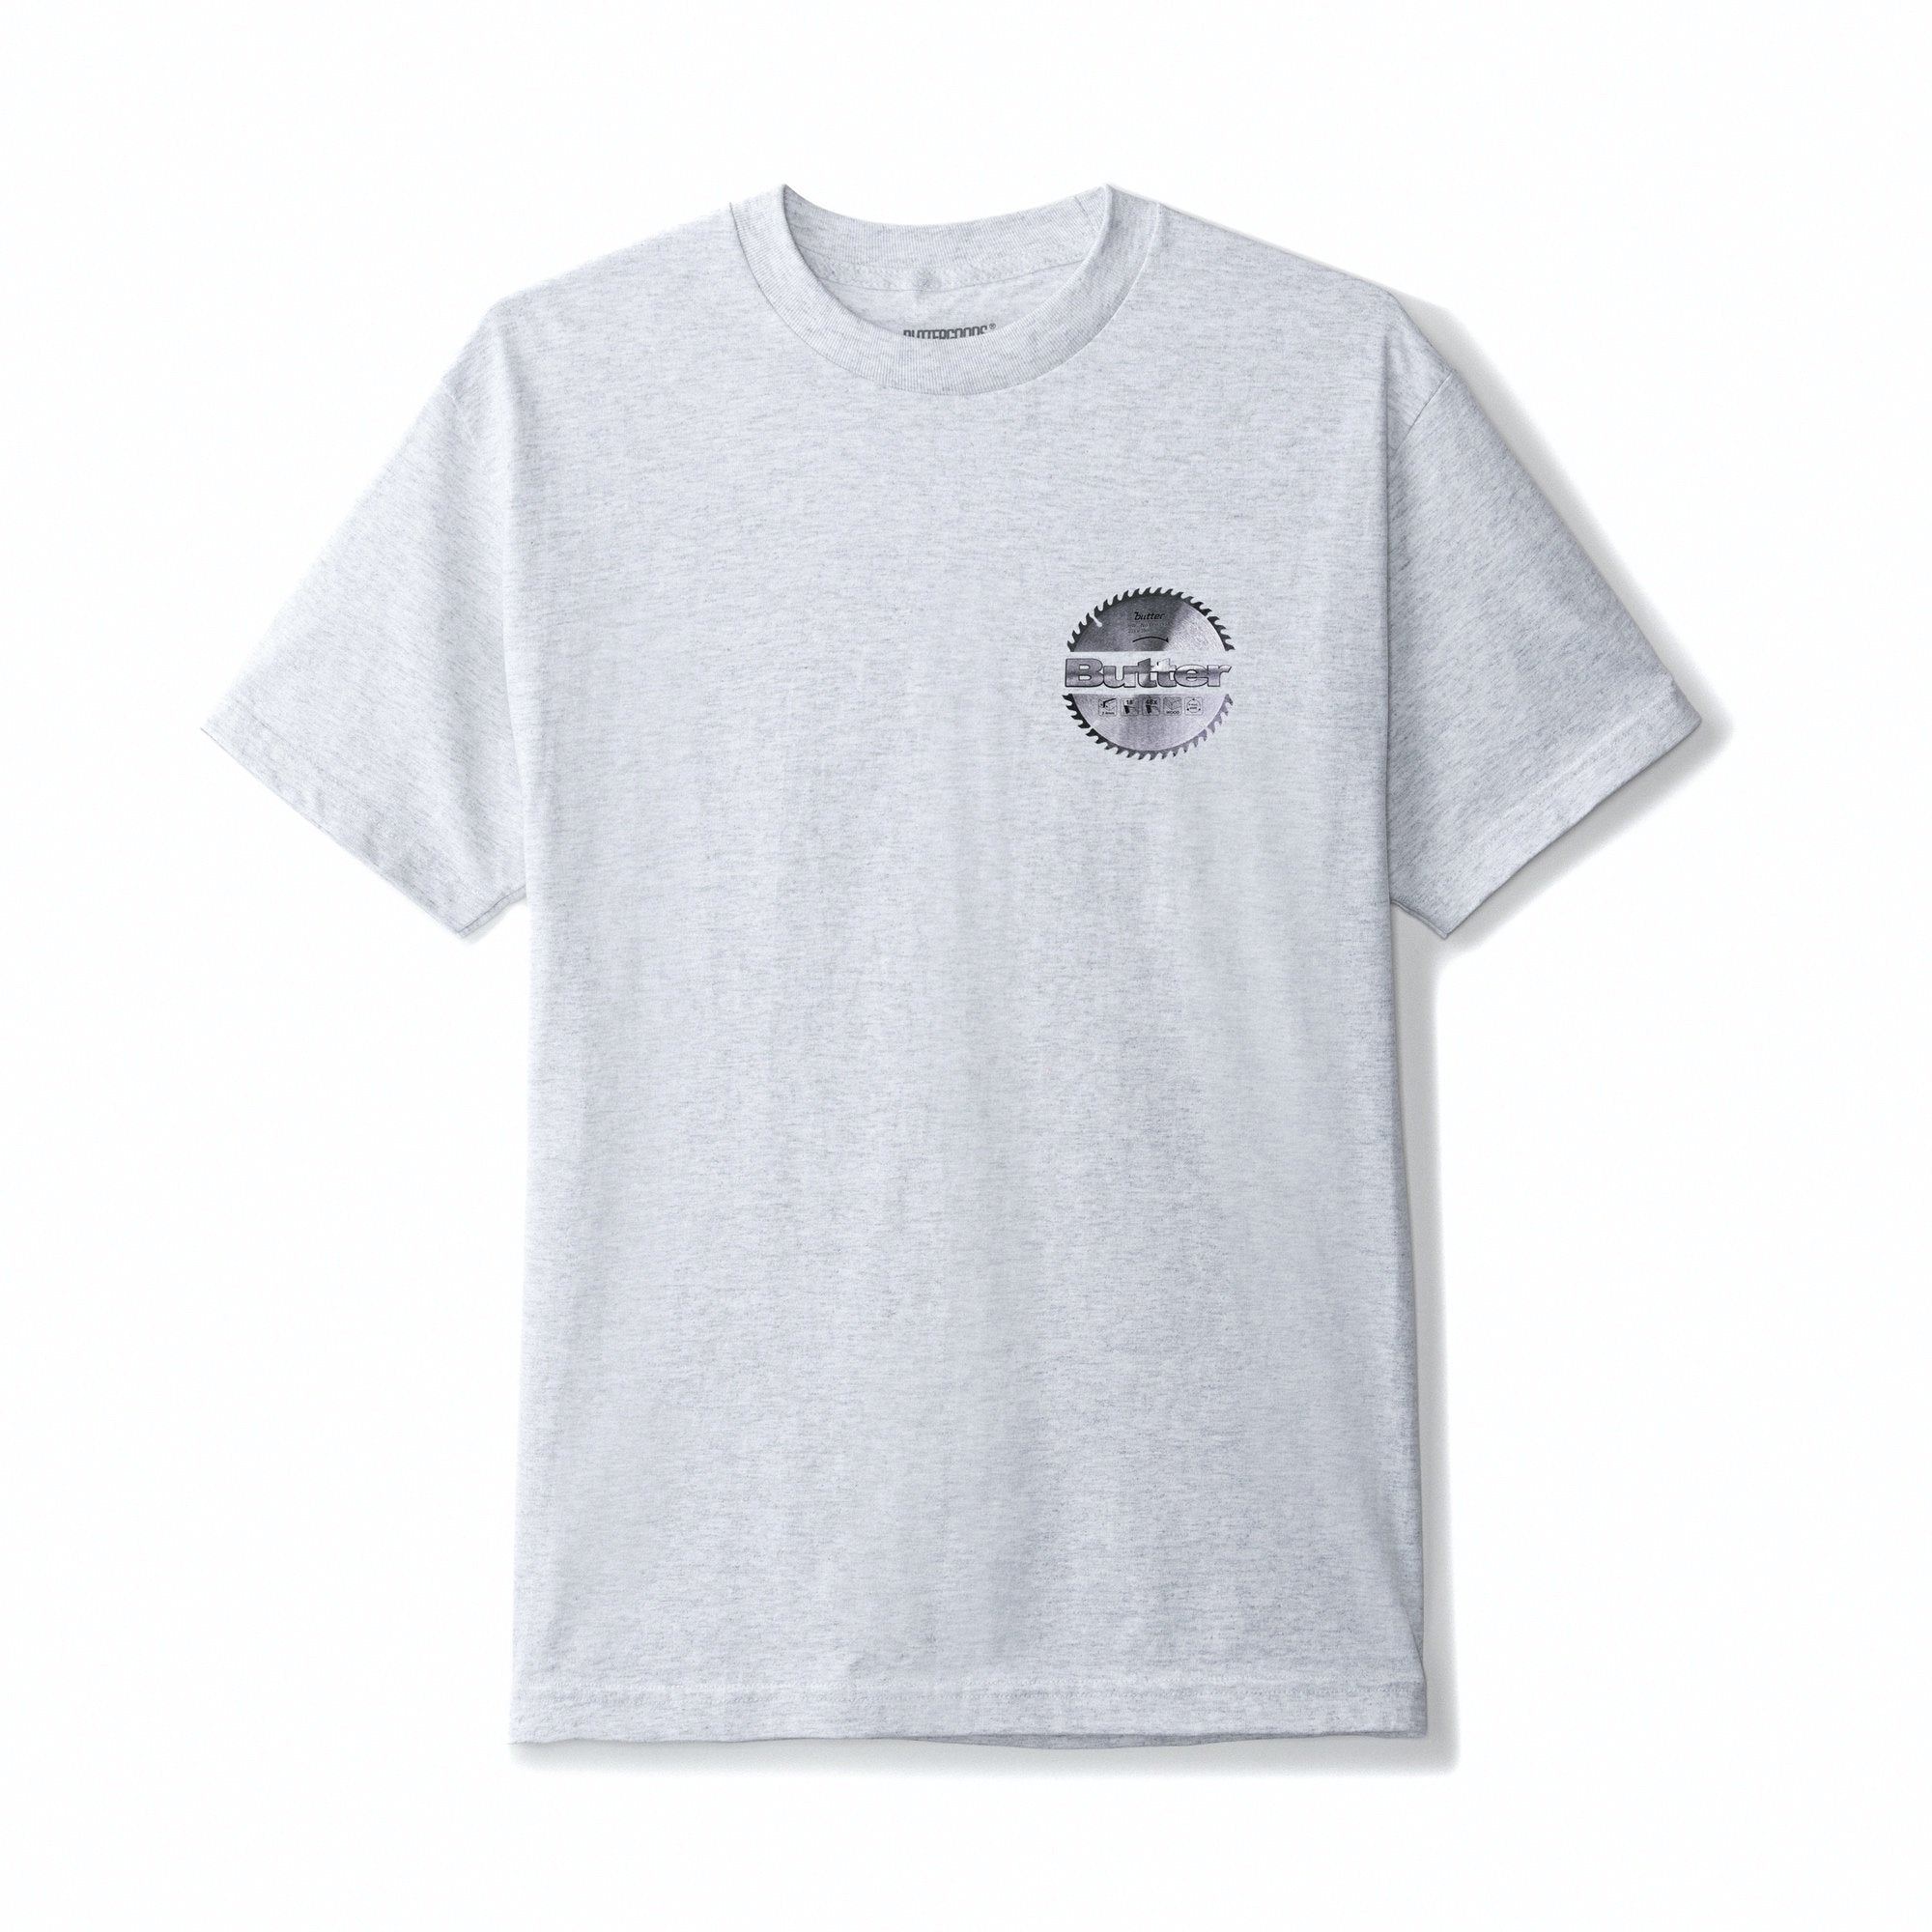 Butter Goods Blade Logo Tee Product Photo #1